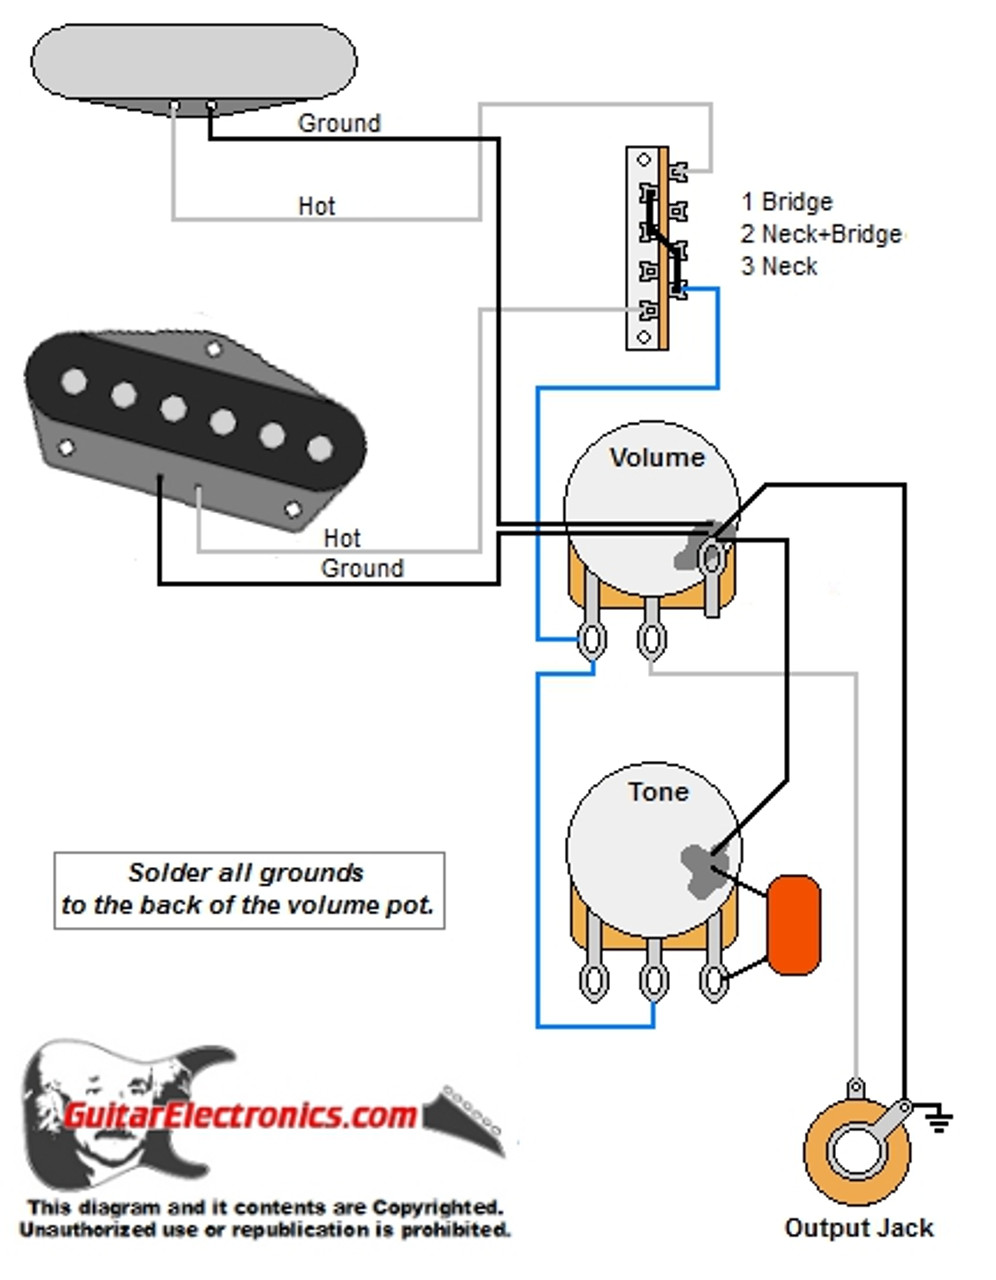 Telecaster 3 Way Wiring Diagram 2 Single Coil standard ... on ibanez grg series wiring diagram, fender strat wiring diagram, telecaster wiring harness, fender broadcaster wiring diagram, telecaster wiring kits, fender jazzmaster wiring diagram, telecaster wiring 5-way switch, nashville telecaster wiring diagram, mexican strat wiring diagram, telecaster guitar wiring diagram, standard strat wiring diagram, american stratocaster wiring diagram, telecaster pickup installation, telecaster seymour duncan wiring diagrams, telecaster texas special wiring diagram, telecaster pickup cover, telecaster wiring position 5, jazzmaster guitar wiring diagram, fender stratocaster series wiring diagram, fender precision bass wiring diagram,